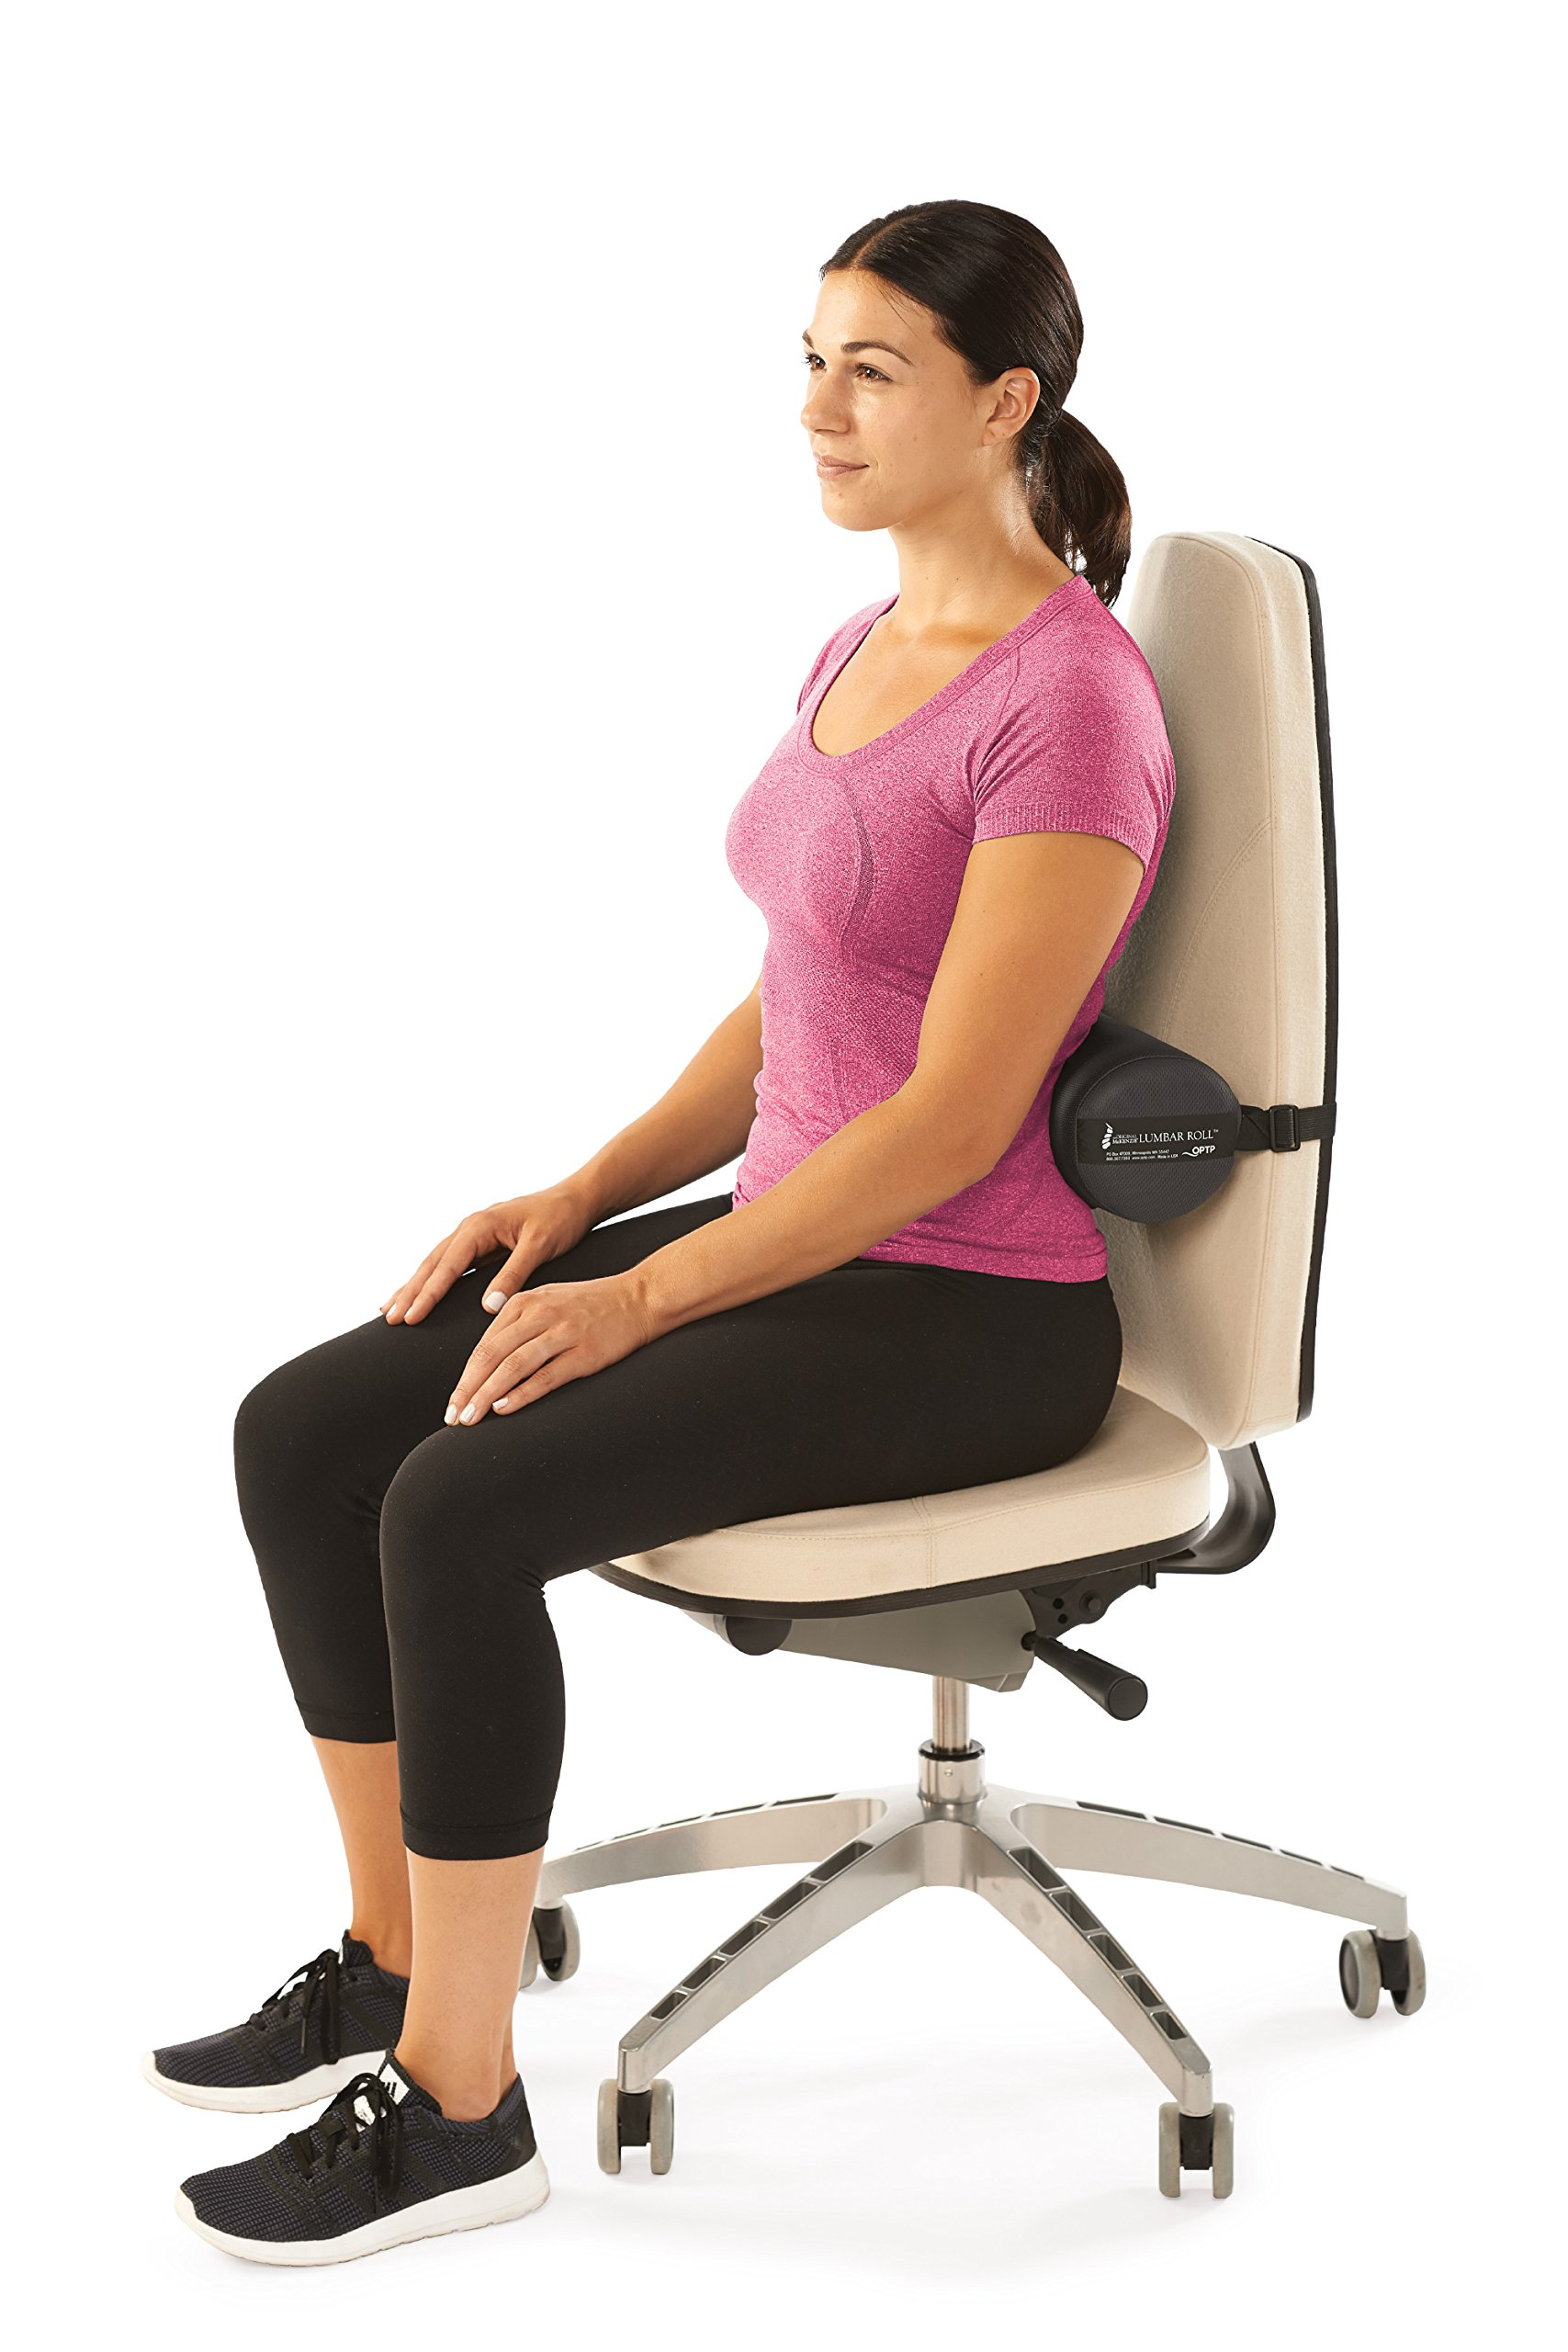 The Original McKenzie Lumbar Roll by OPTP - Low Back Support for Office Chairs and Car Seats by OPTP (Image #3)